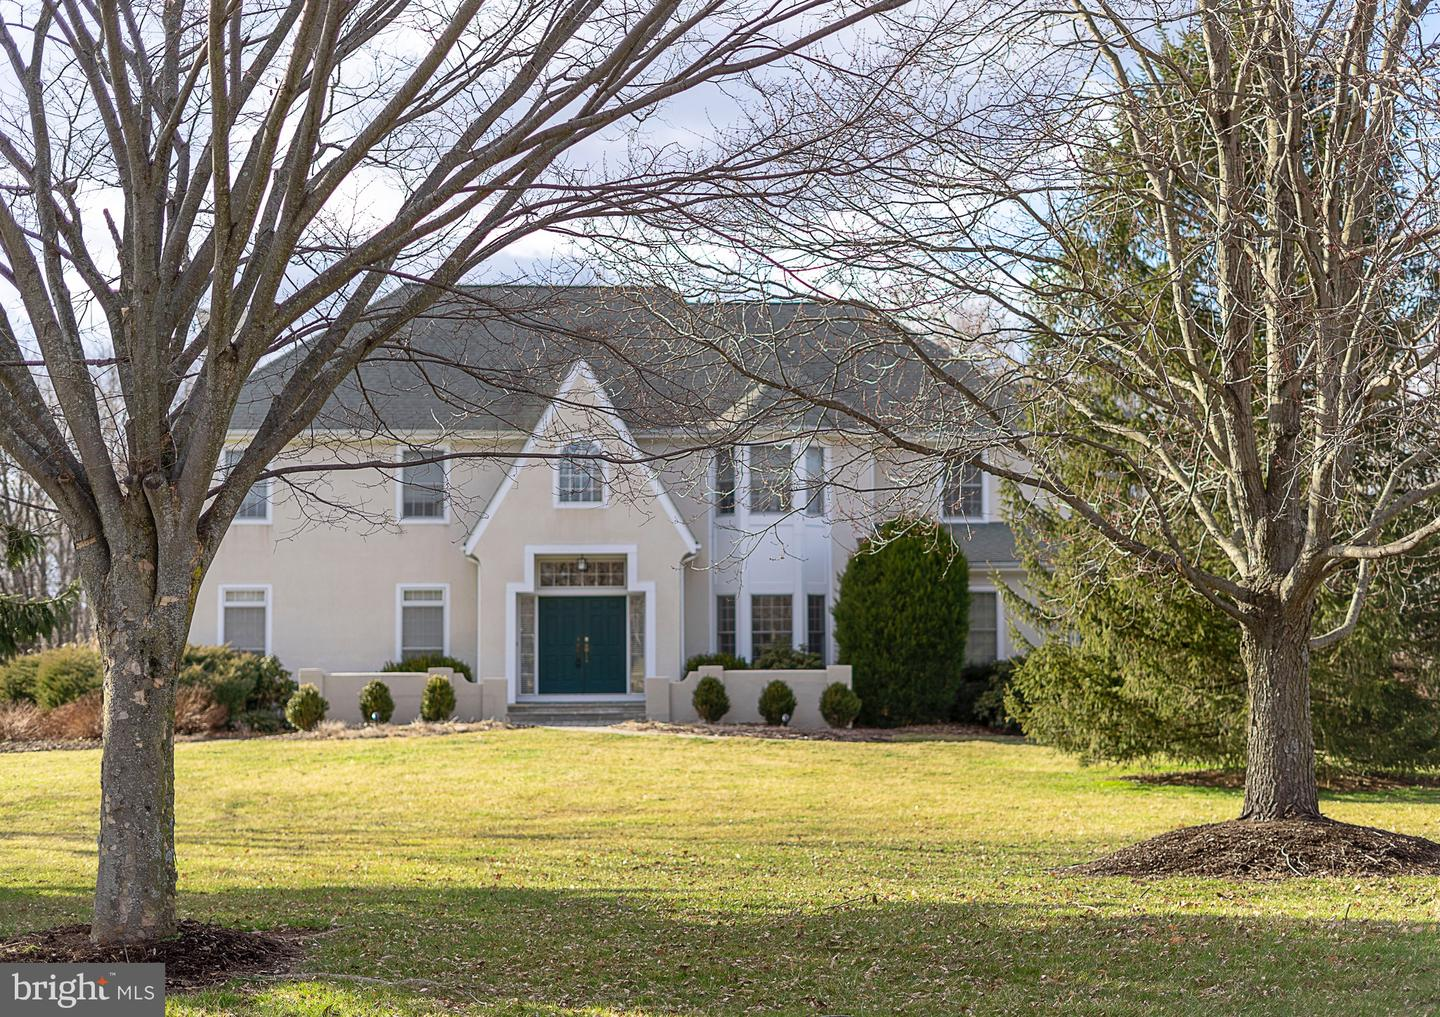 Single Family Home for Sale at 4 GRACE HILL Court Hopewell, New Jersey 08525 United StatesMunicipality: Hopewell Township